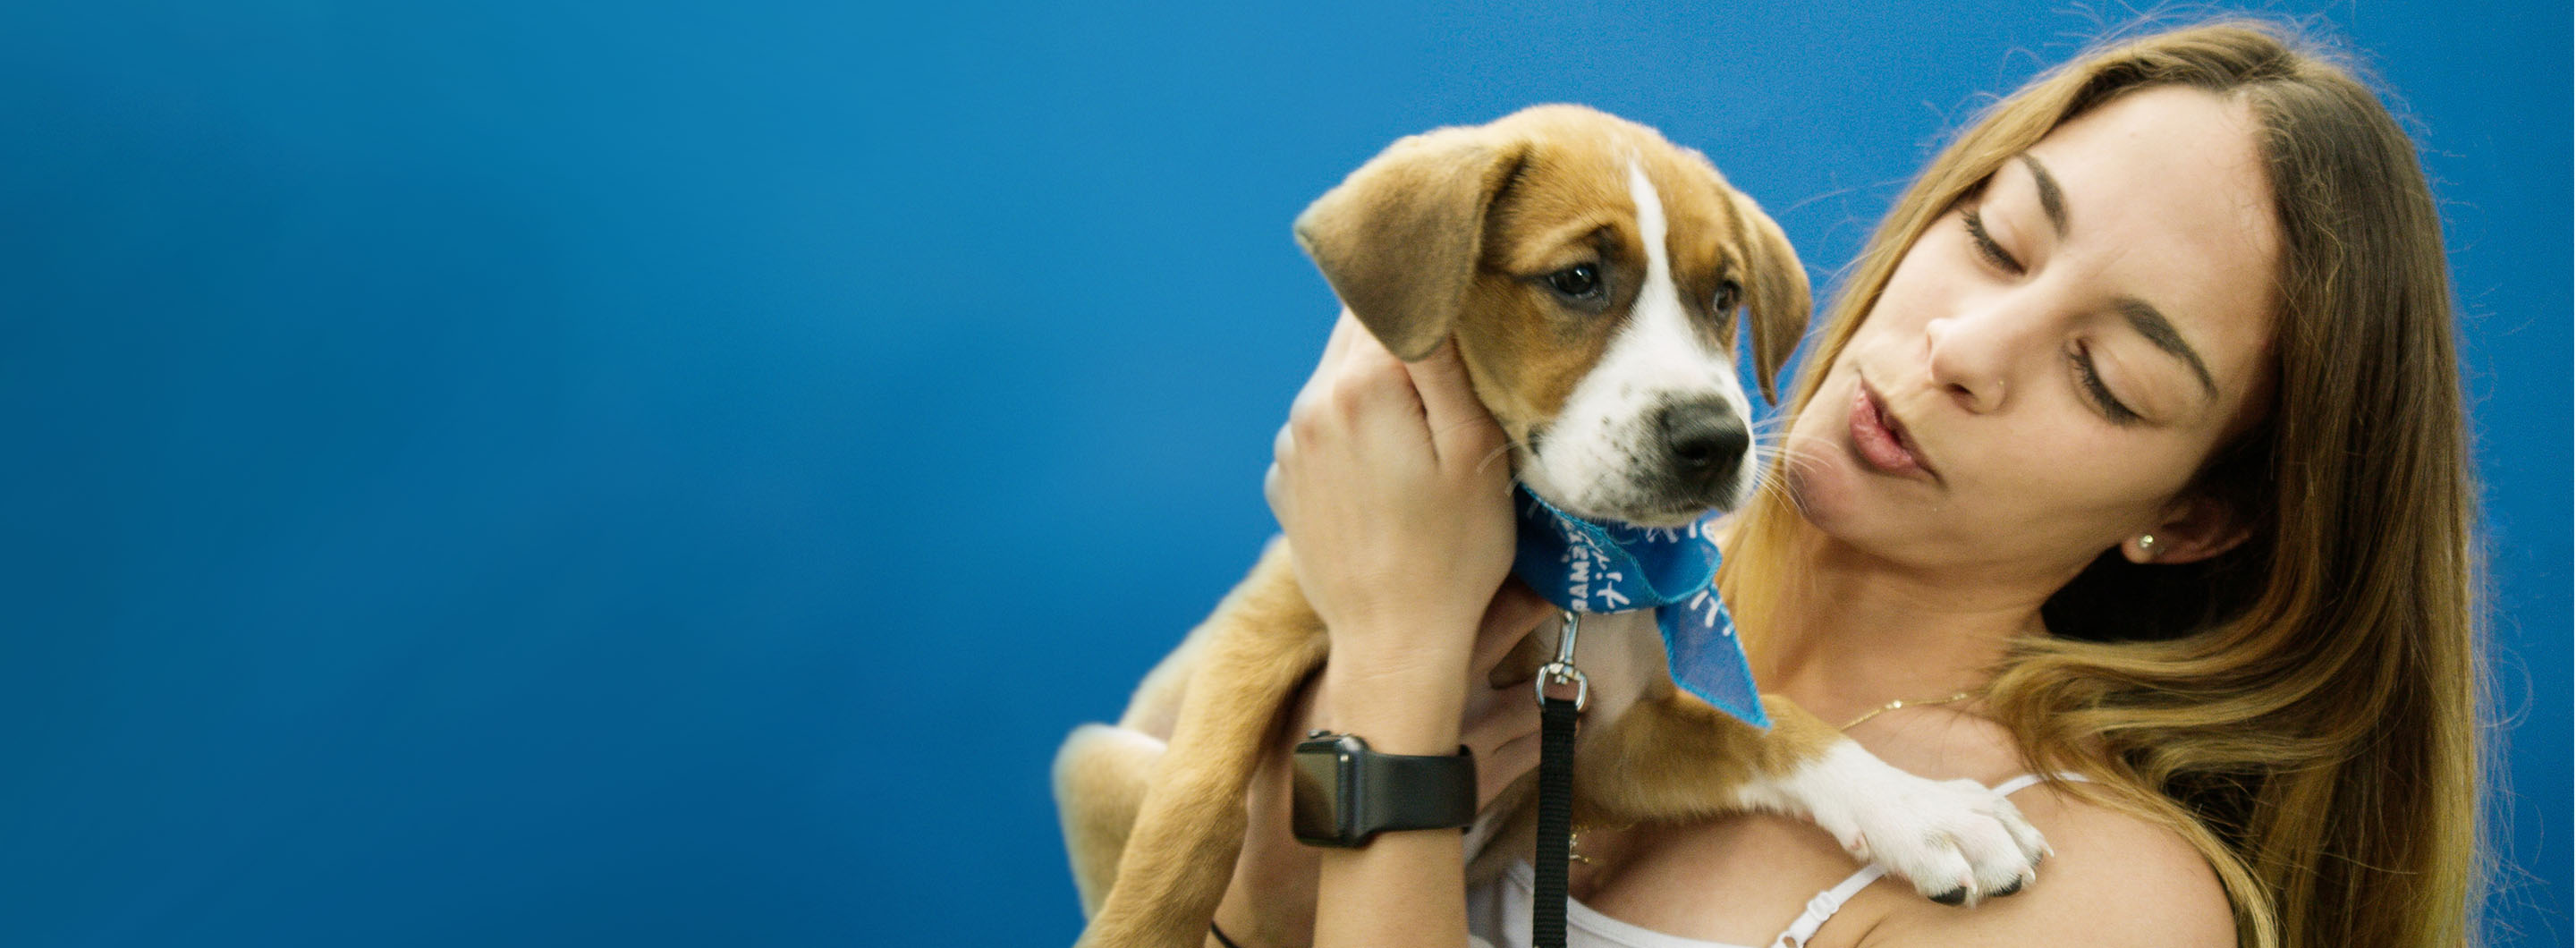 Supporting animal shelters & nonprofits near you | PetSmart